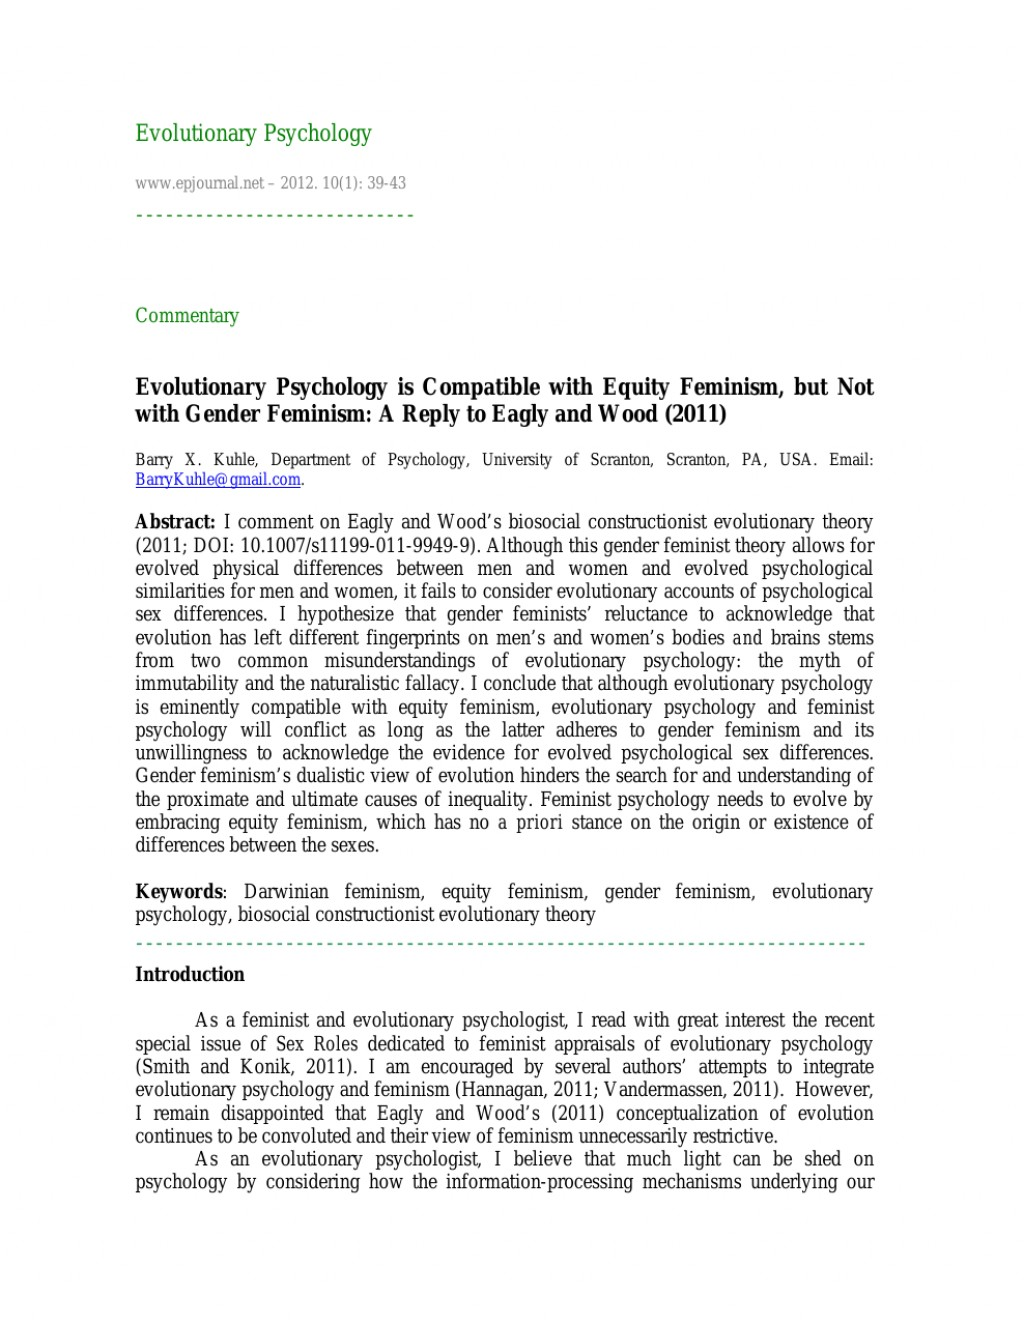 002 Evolutionary Psychology Topics For Research Papers Paper Unique Large